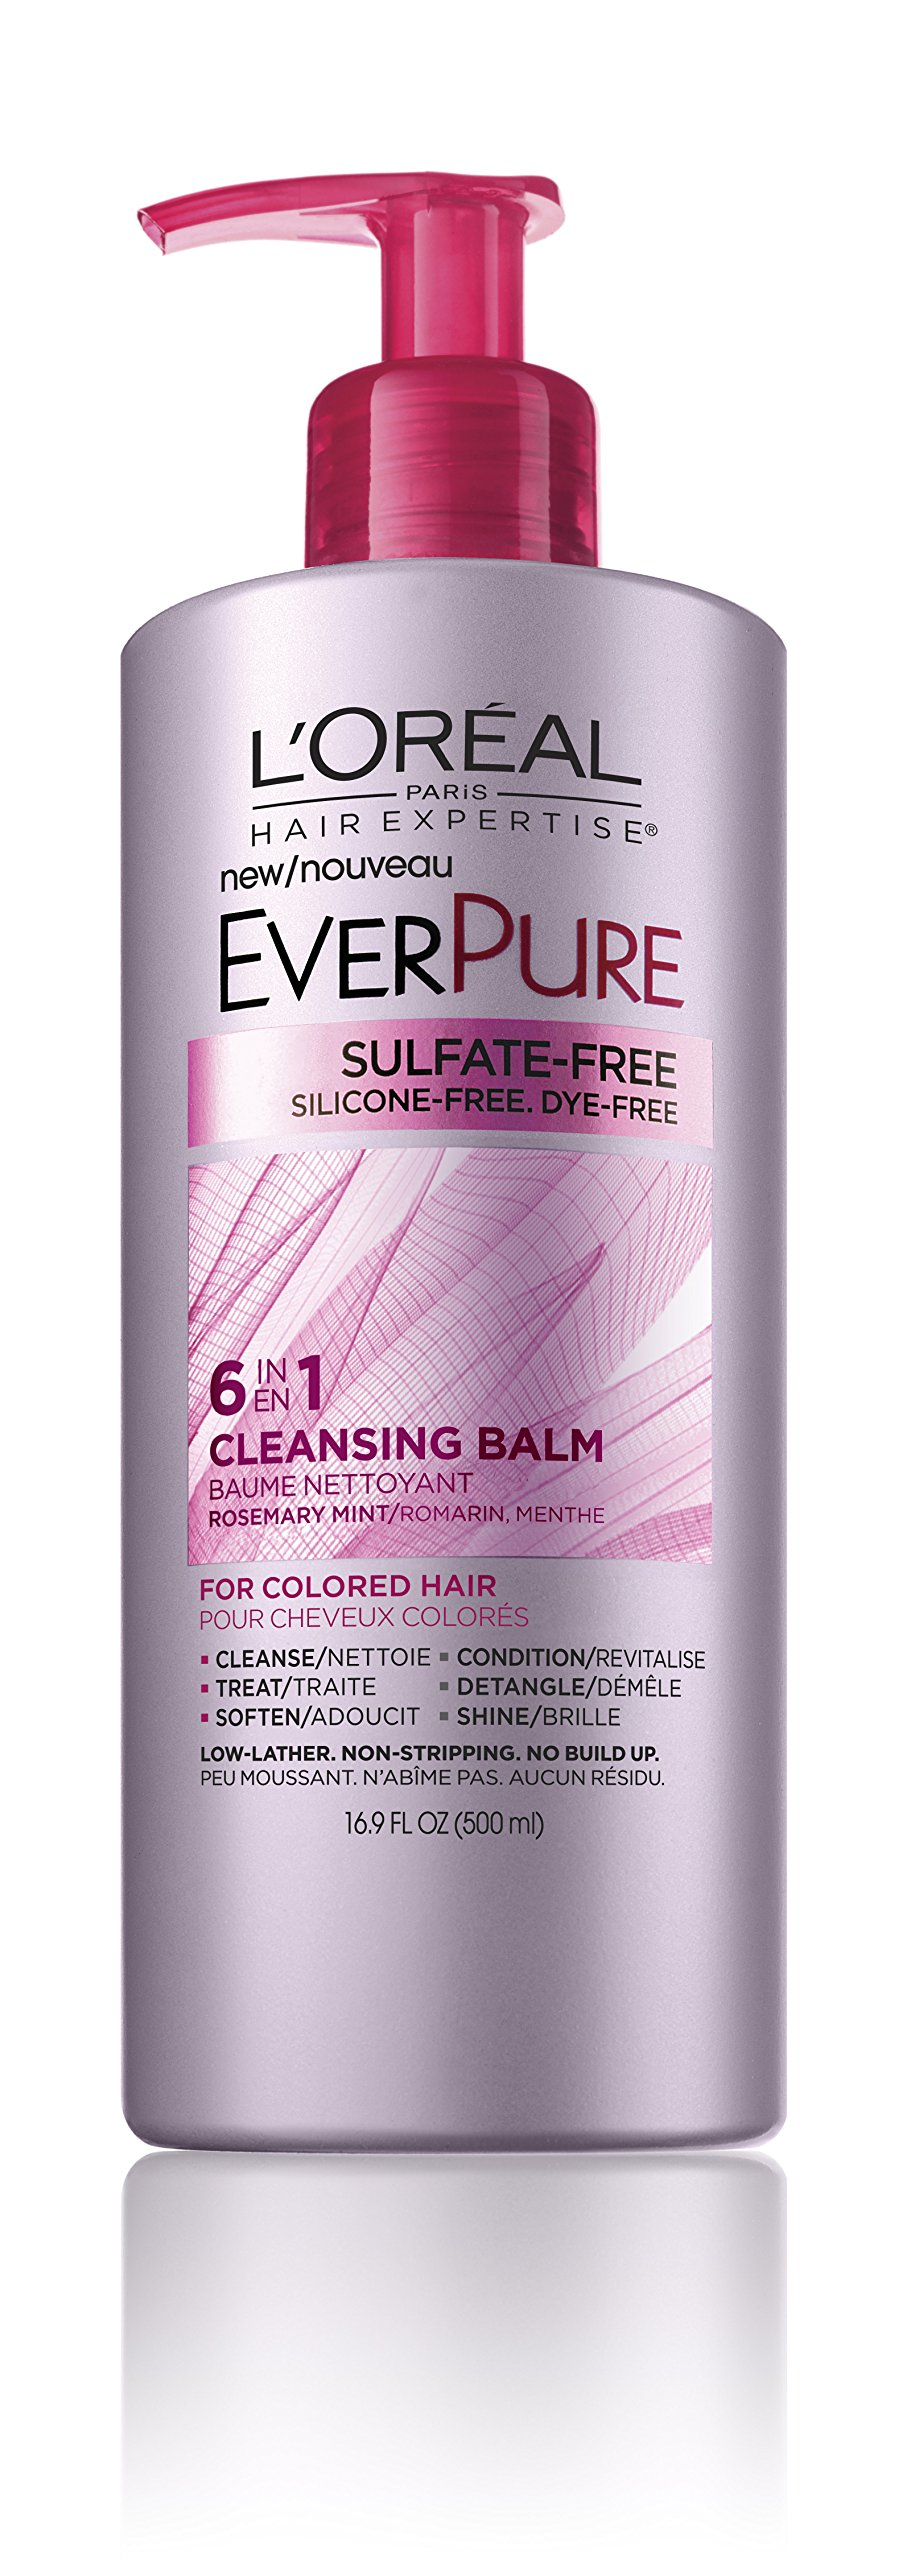 L'Oréal Paris EverPure Cleansing Balm, 16.9 fl. oz.